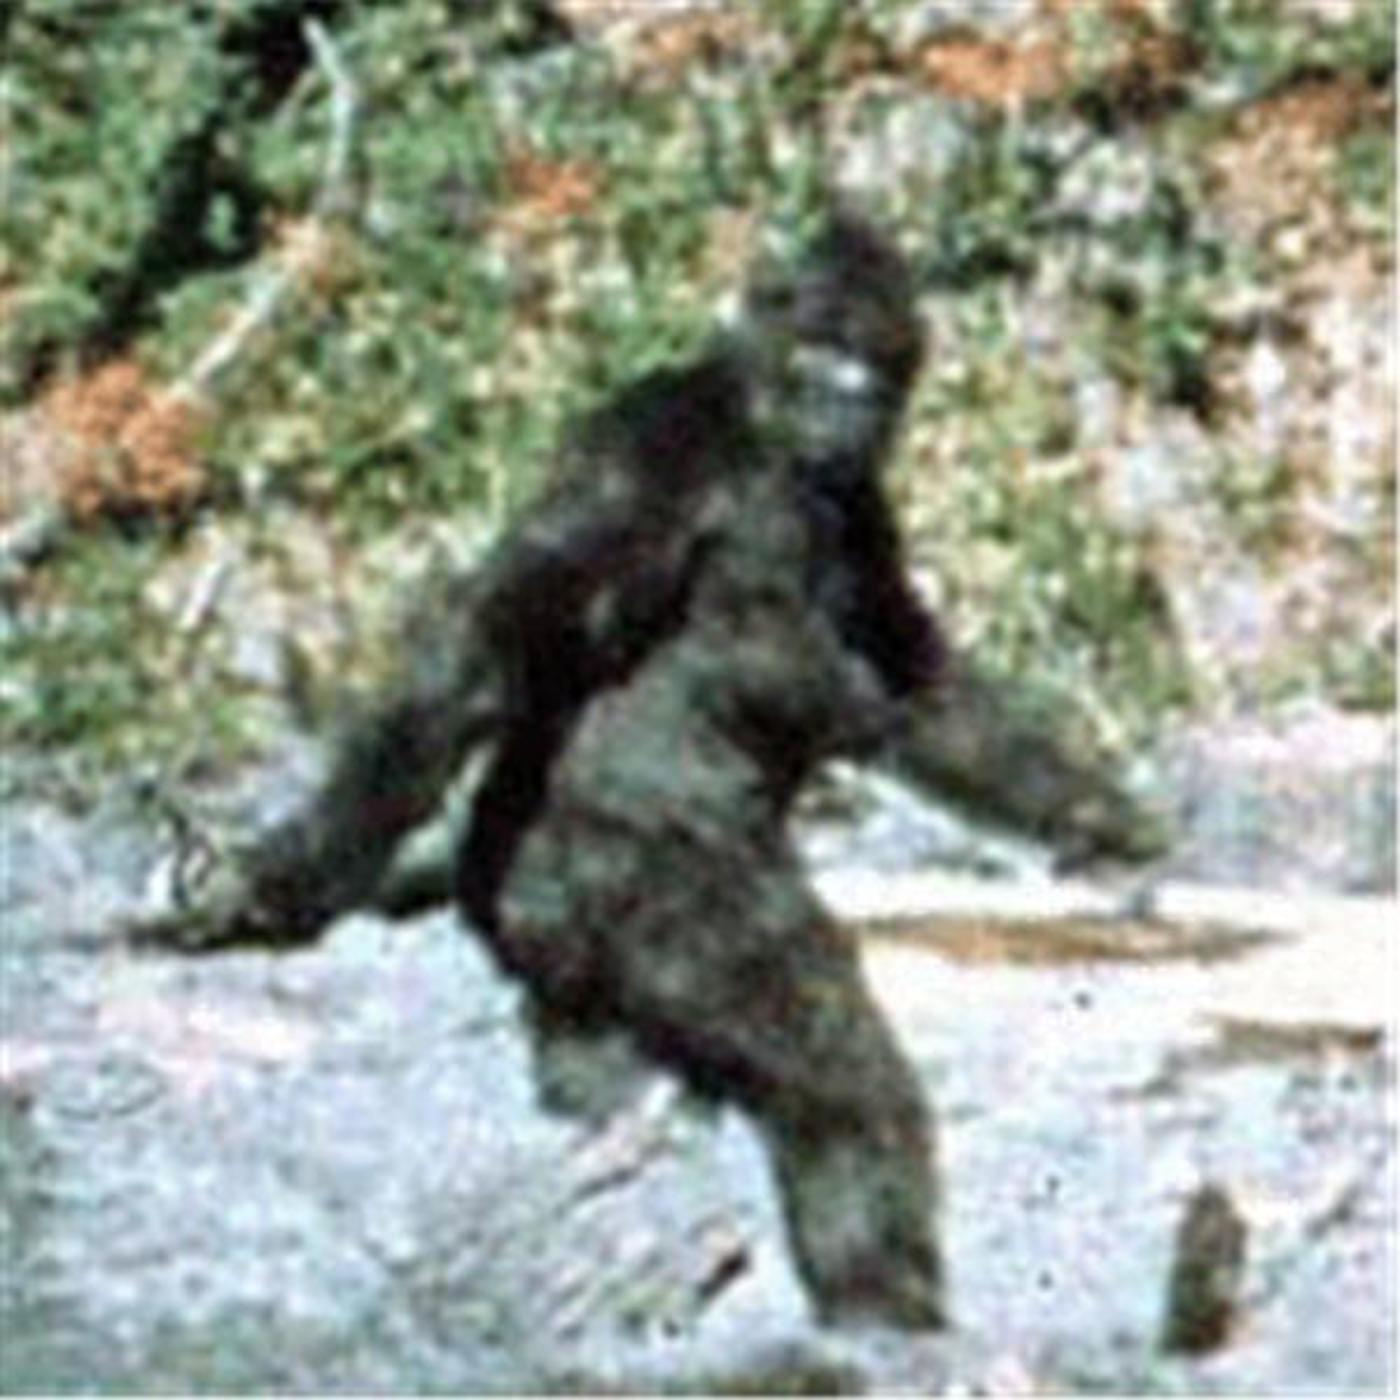 BIGFOOT GROUND ZERO - Episode 17 Cloaking & Masking